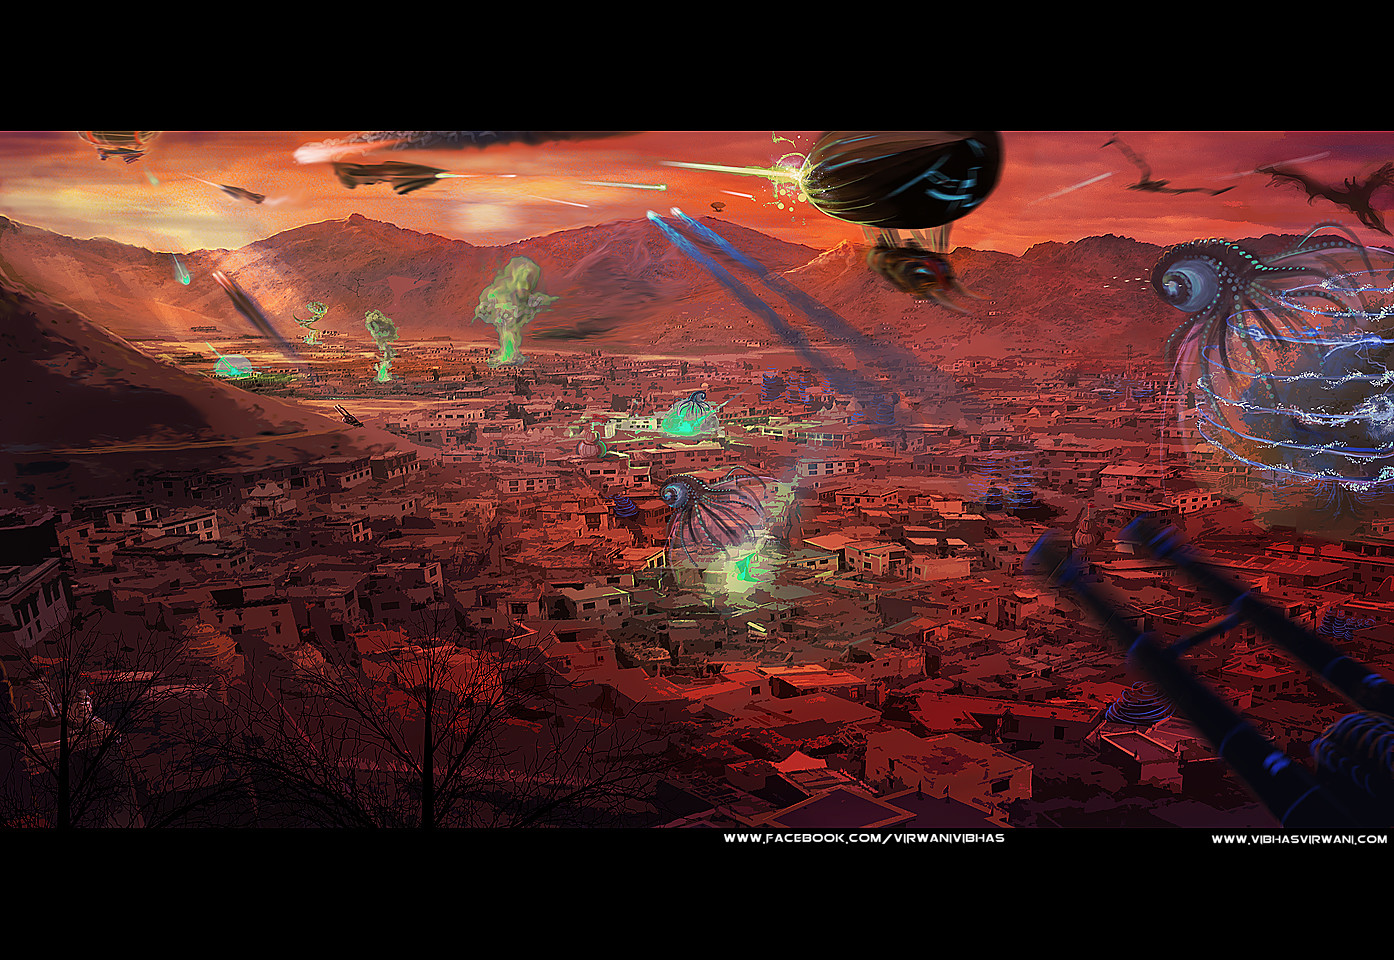 Vibhas virwani environment concept art illustration photoshop painting dogfight over port royal by vibhas virwani